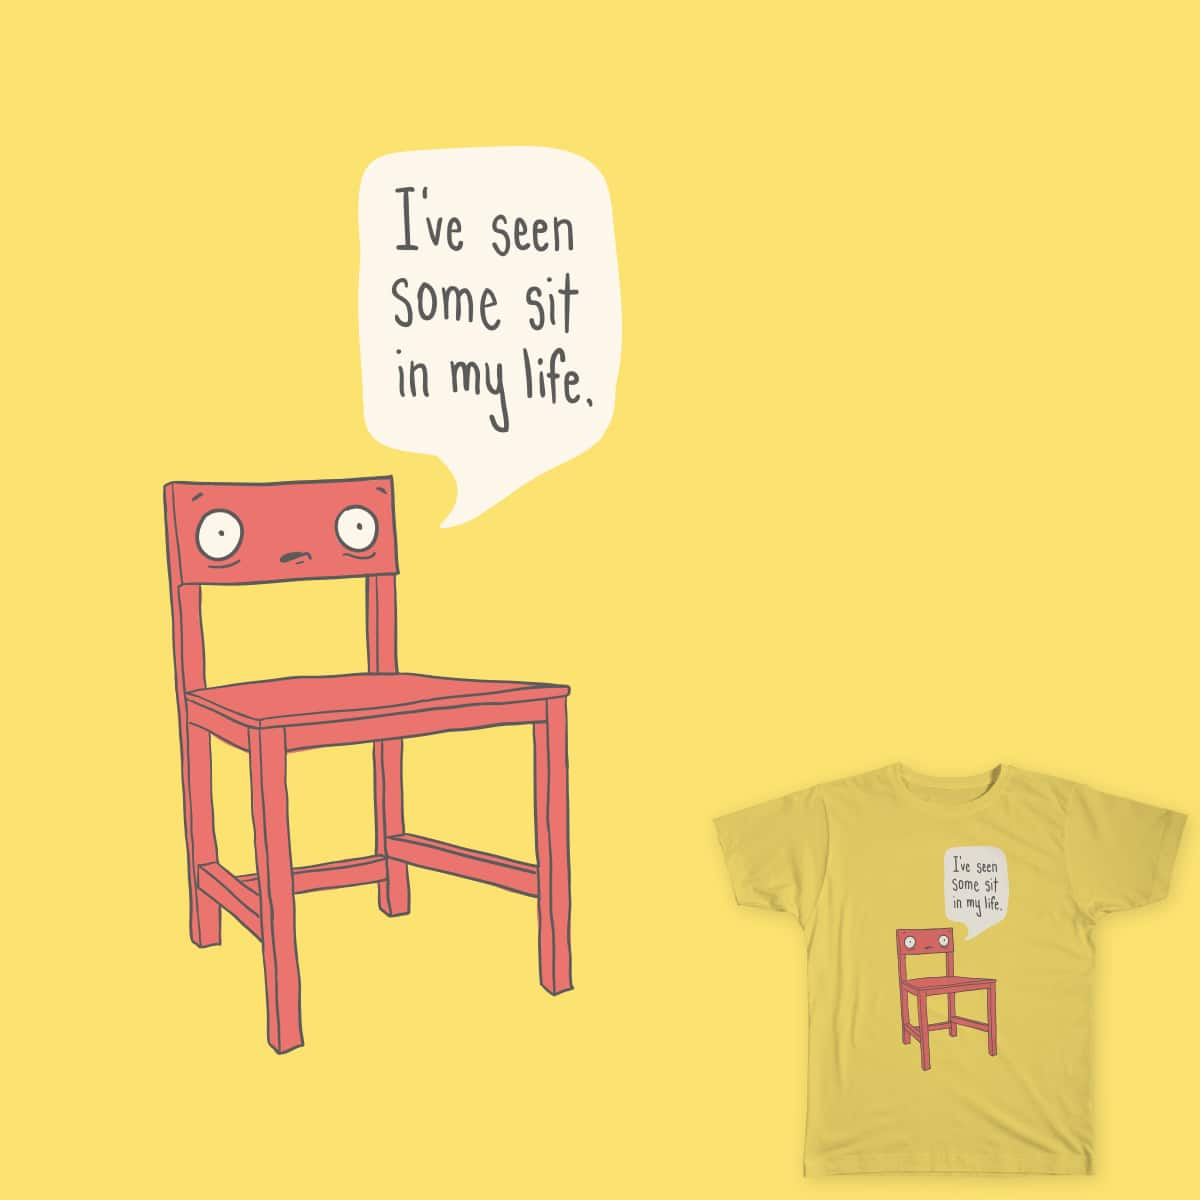 Seen some sit by murraymullet on Threadless